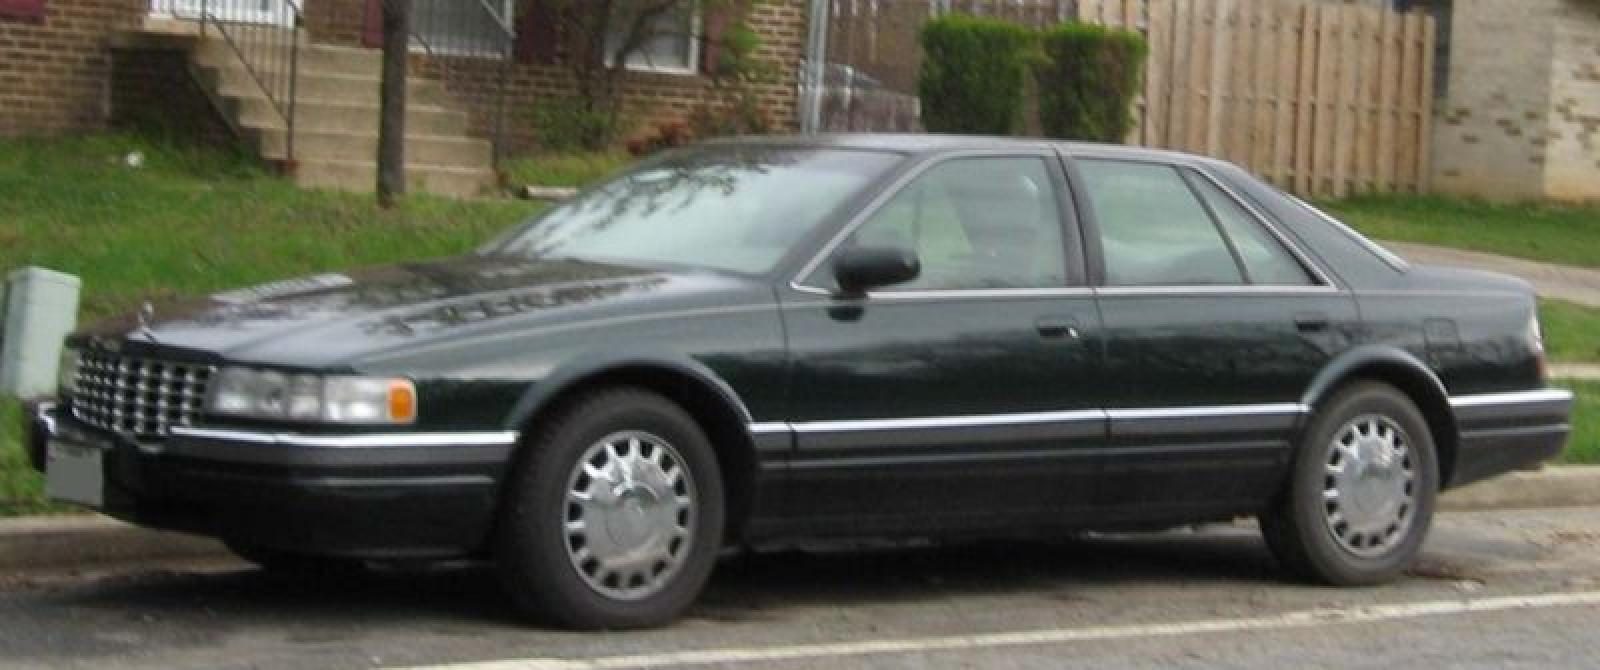 1993 Cadillac Seville - Information and photos - ZombieDrive